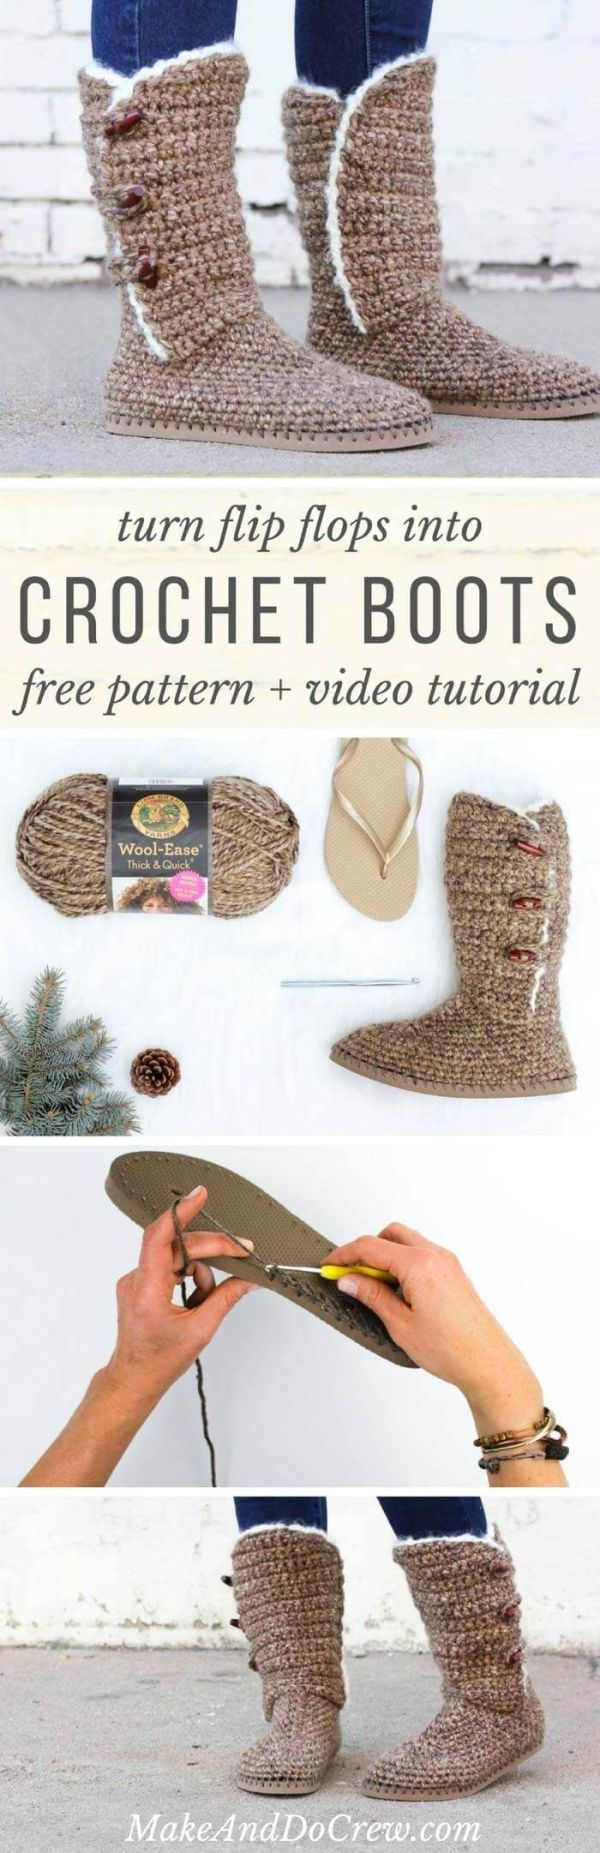 Learn how to make UGG-style crochet boots with flip flop soles in ...